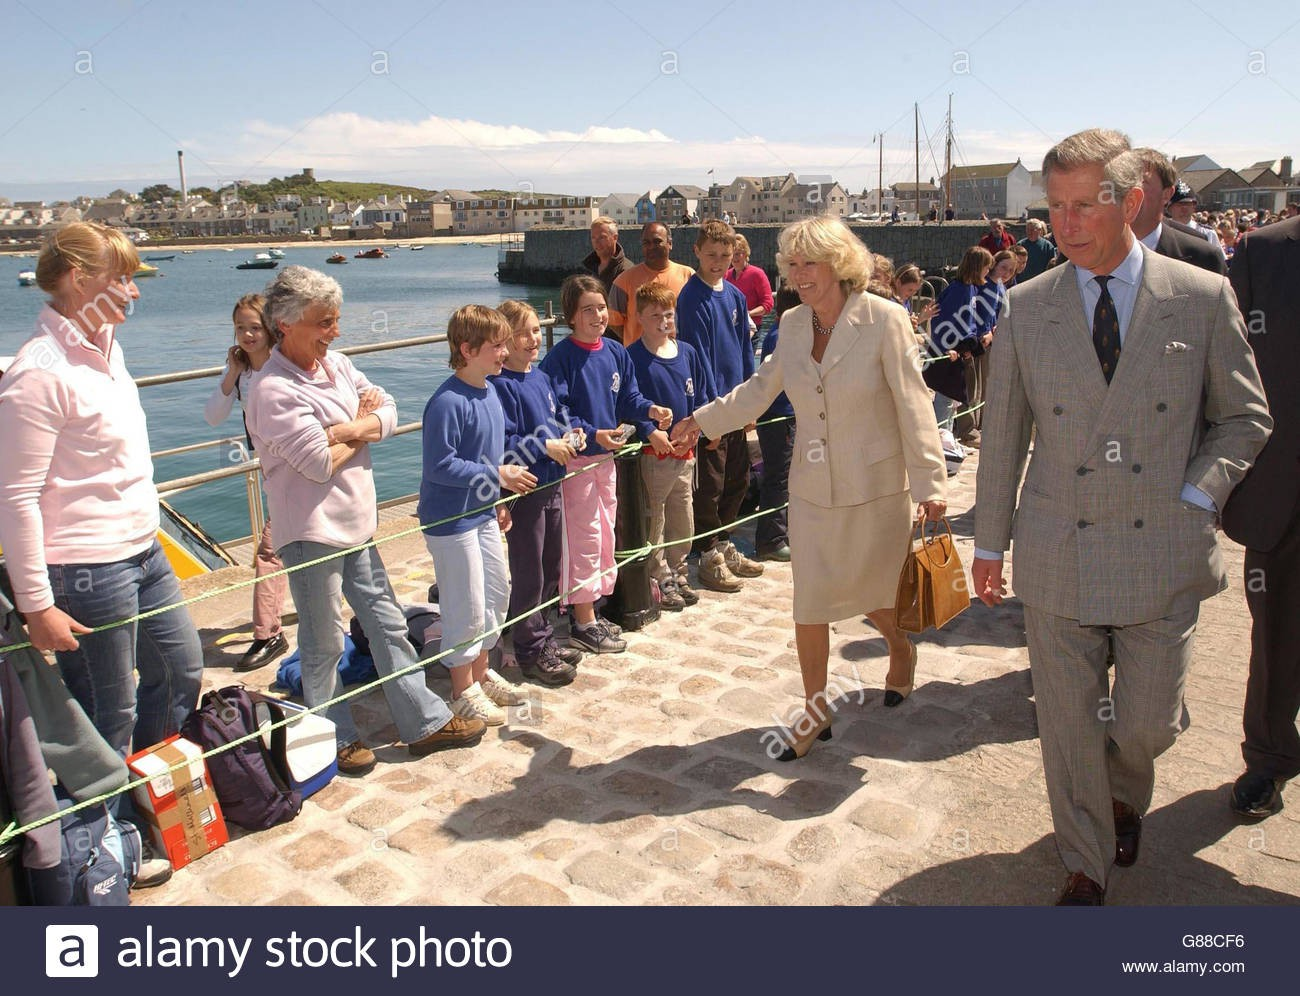 prince-of-wales-scilly-isles-visit-g88cf6